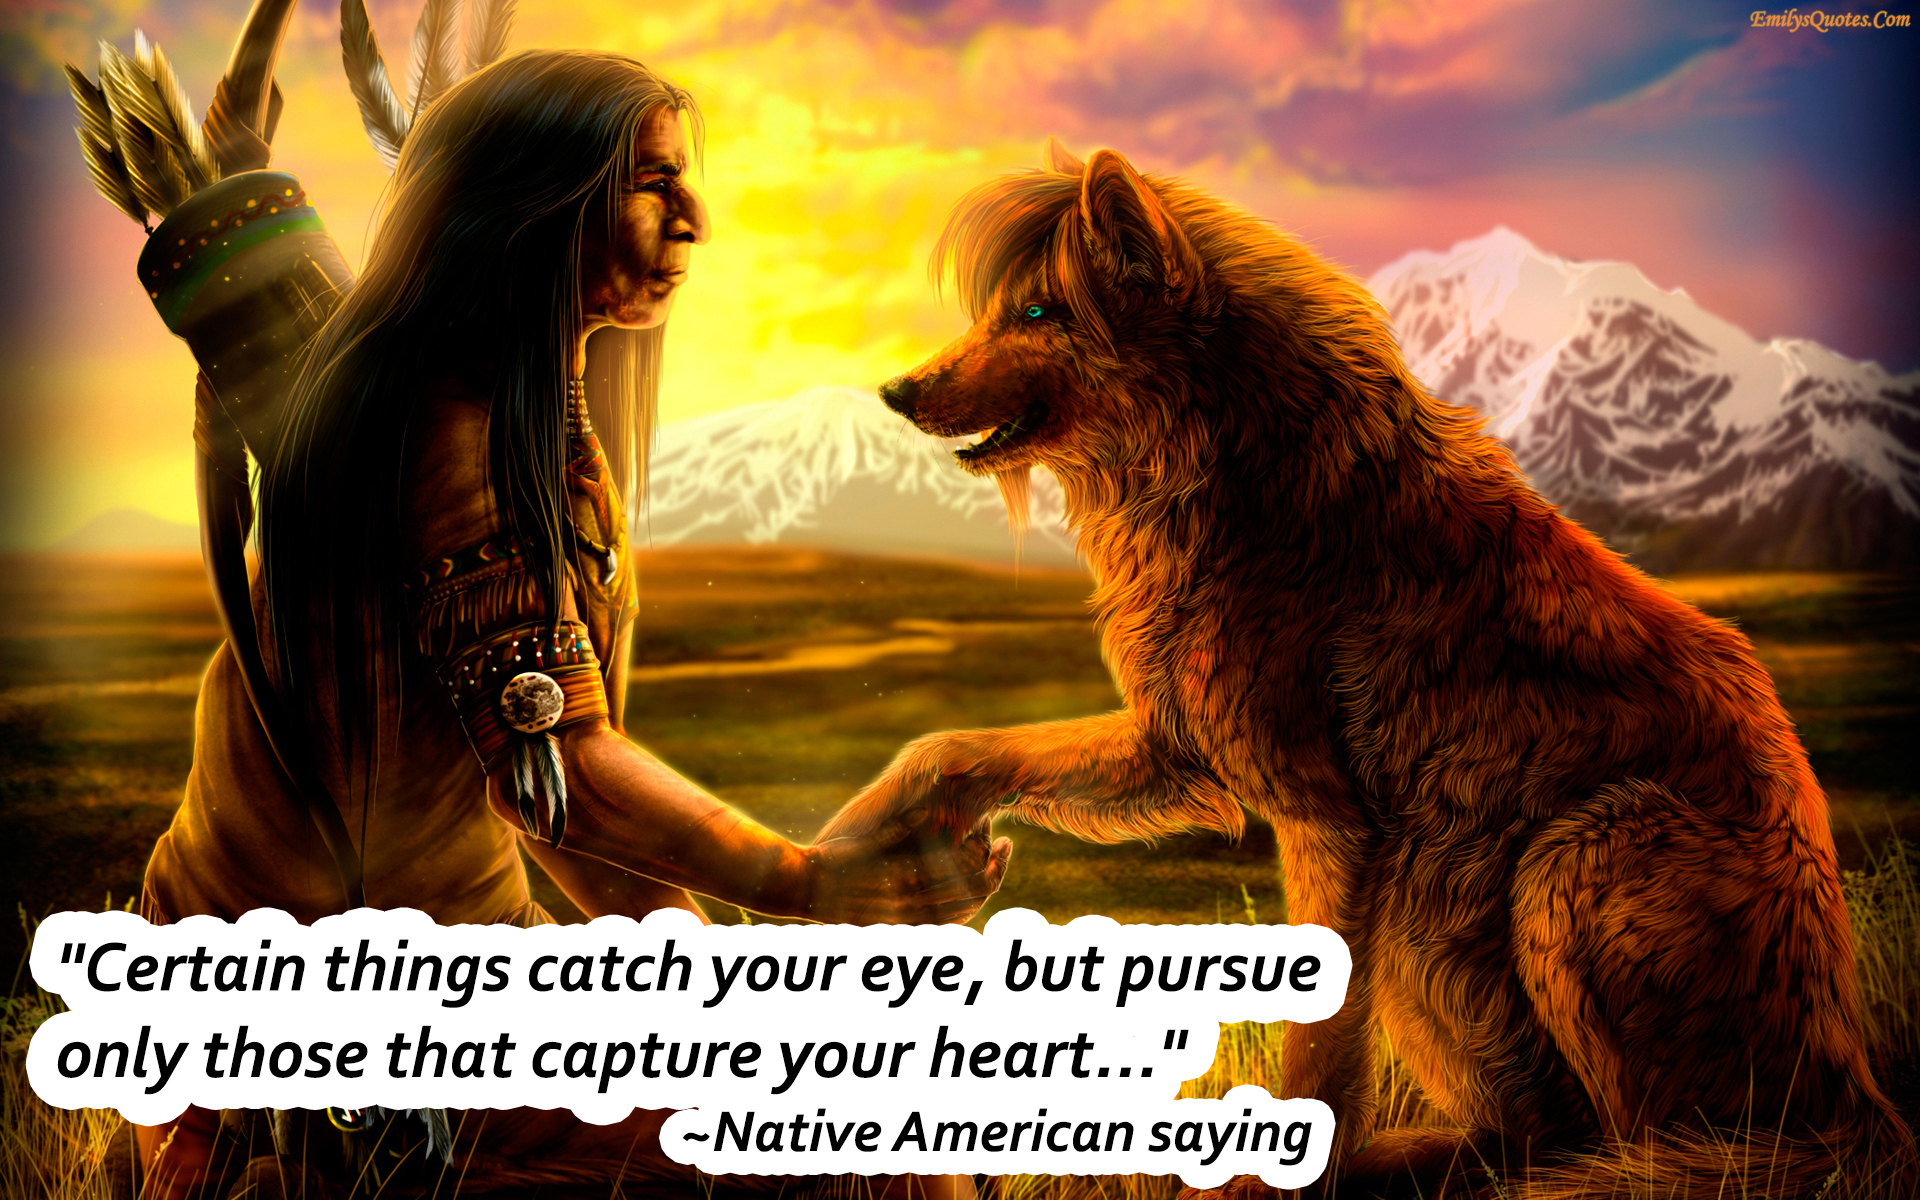 Native American Love Quotes Certain Things Catch Your Eye But Pursue Only Those That Capture